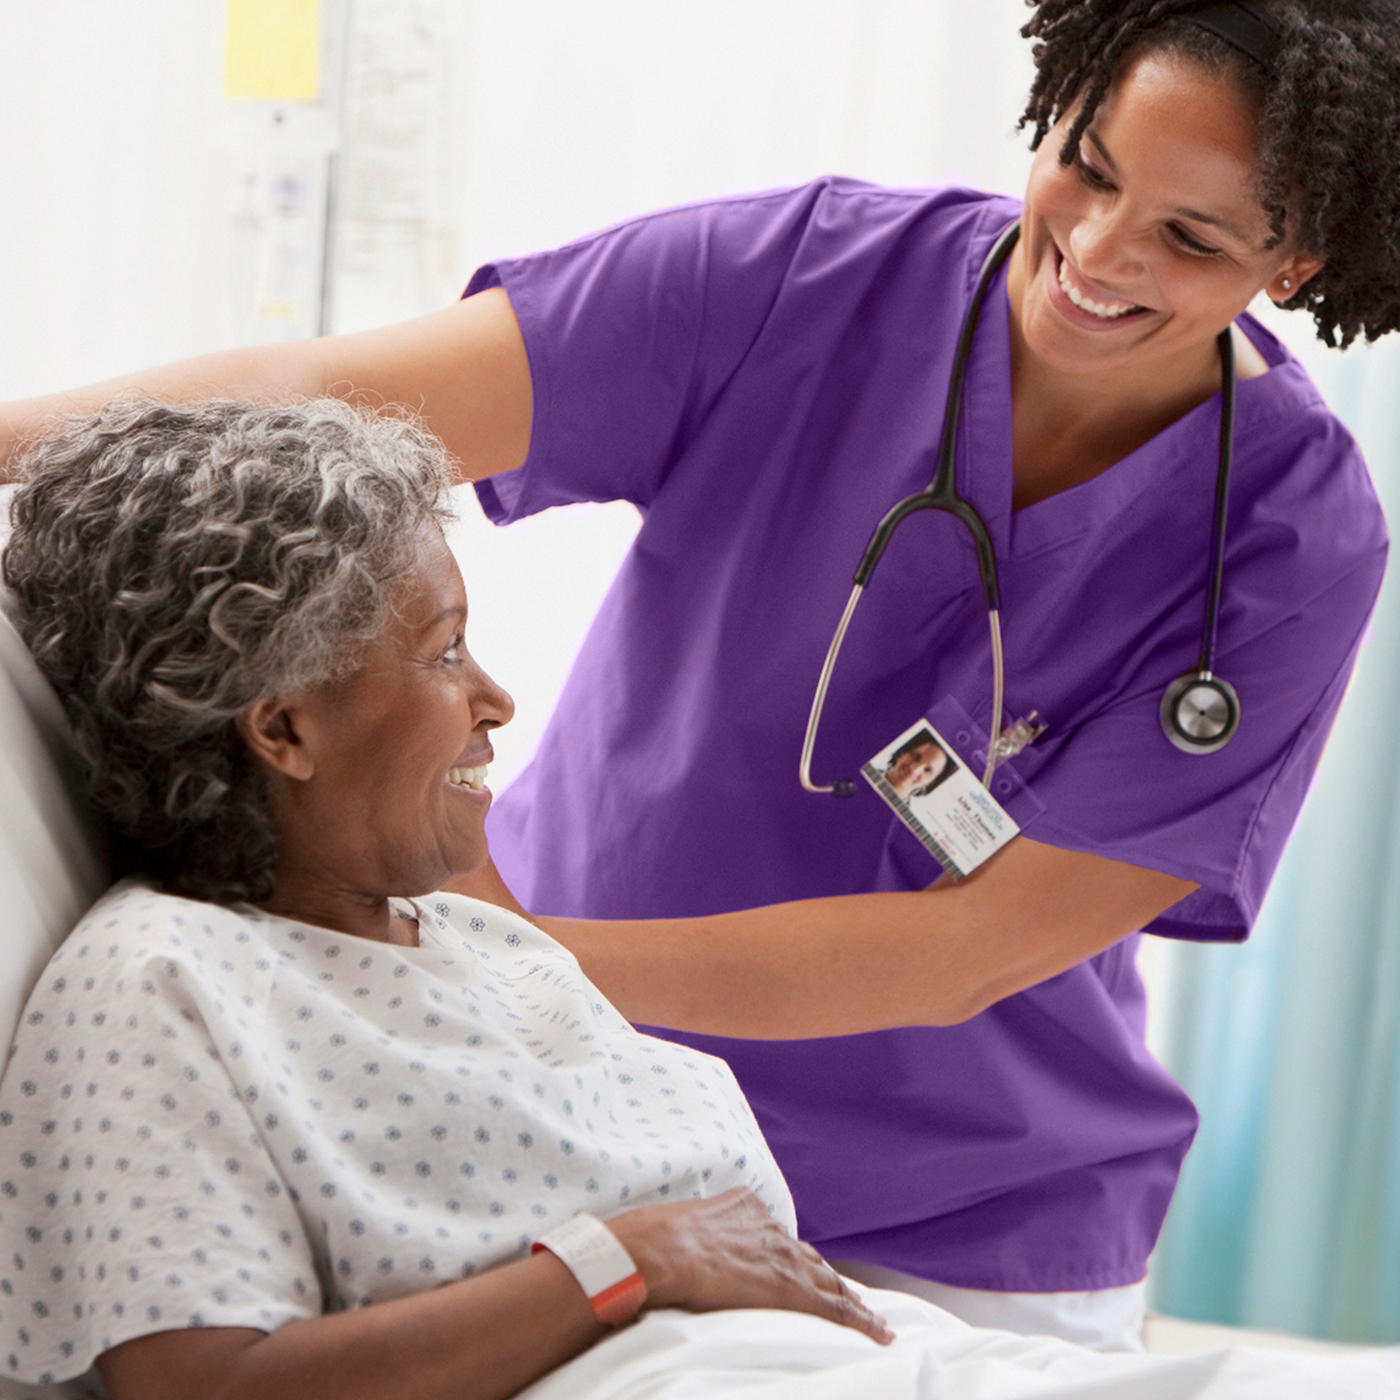 InSite Improve nurse and resident satisfaction by freeing nurses to spend more time with residents